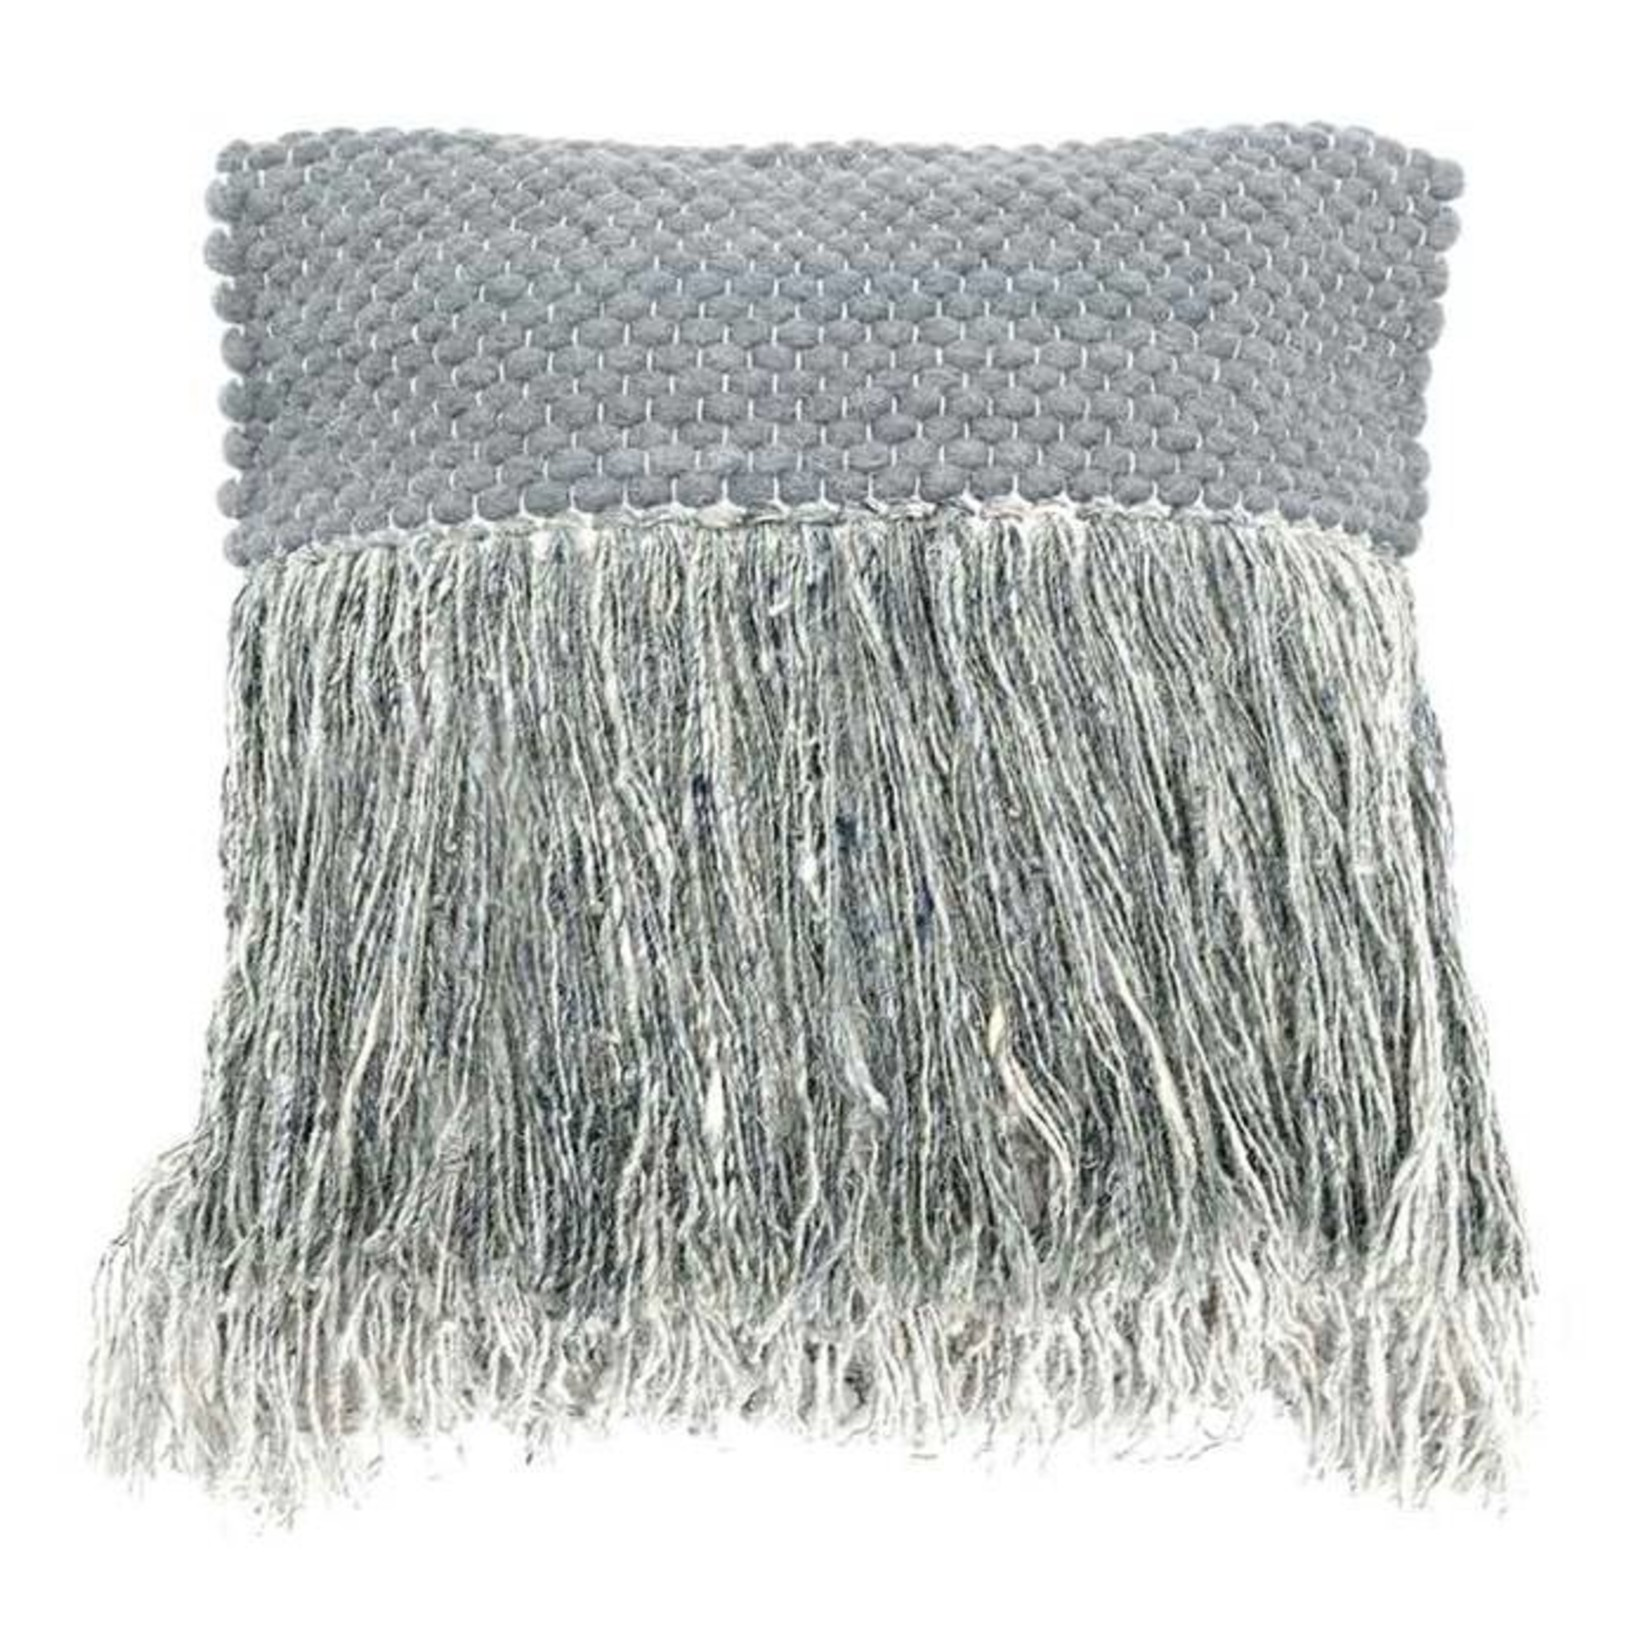 By Boo By Boo Pillow Kylow 45x45 cm grey*